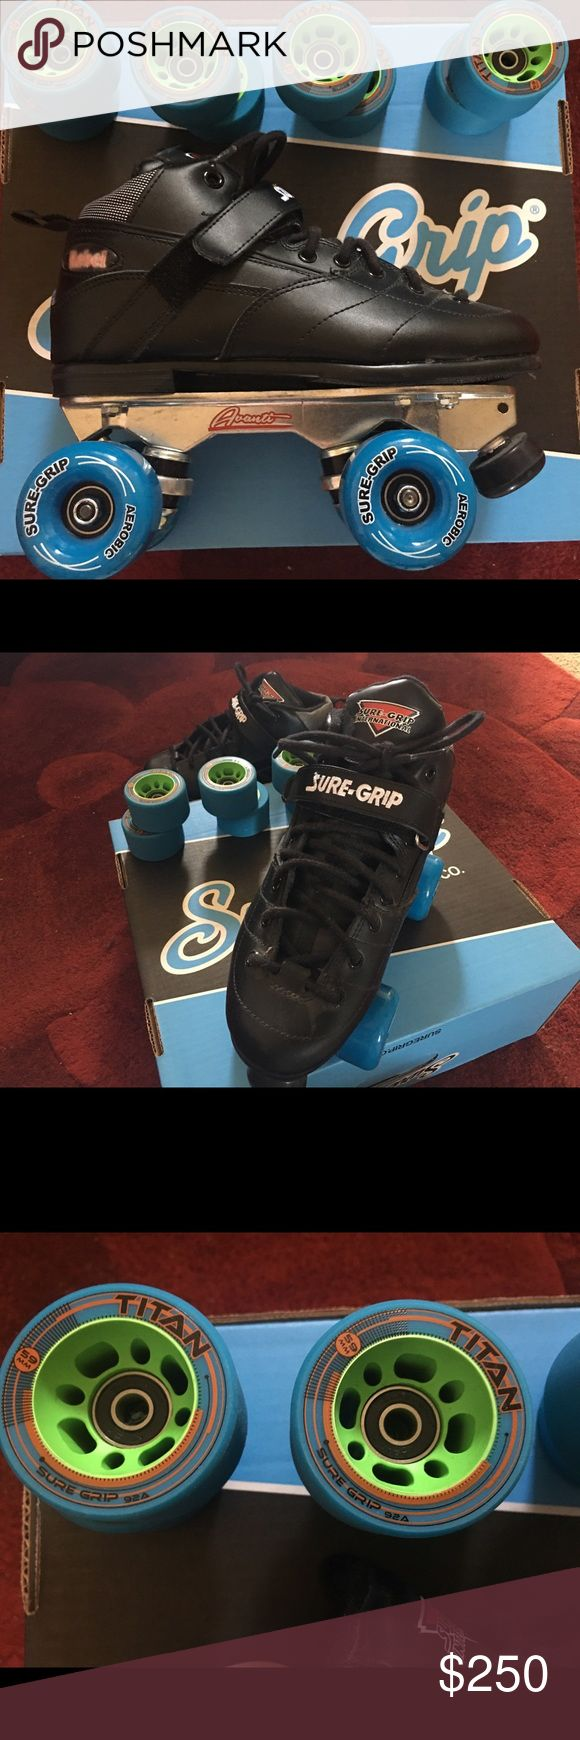 Roller Derby Roller Skates They're brand new in the box, never warn. Women's size 8.5 Men's 7 Sure-Grip Rebel skates. I'll throw in the these Sure-Grip TITAN wheels and Smith knee pads. Valued at $350 NO TRADES ❌ FIRM ON PRICE Other